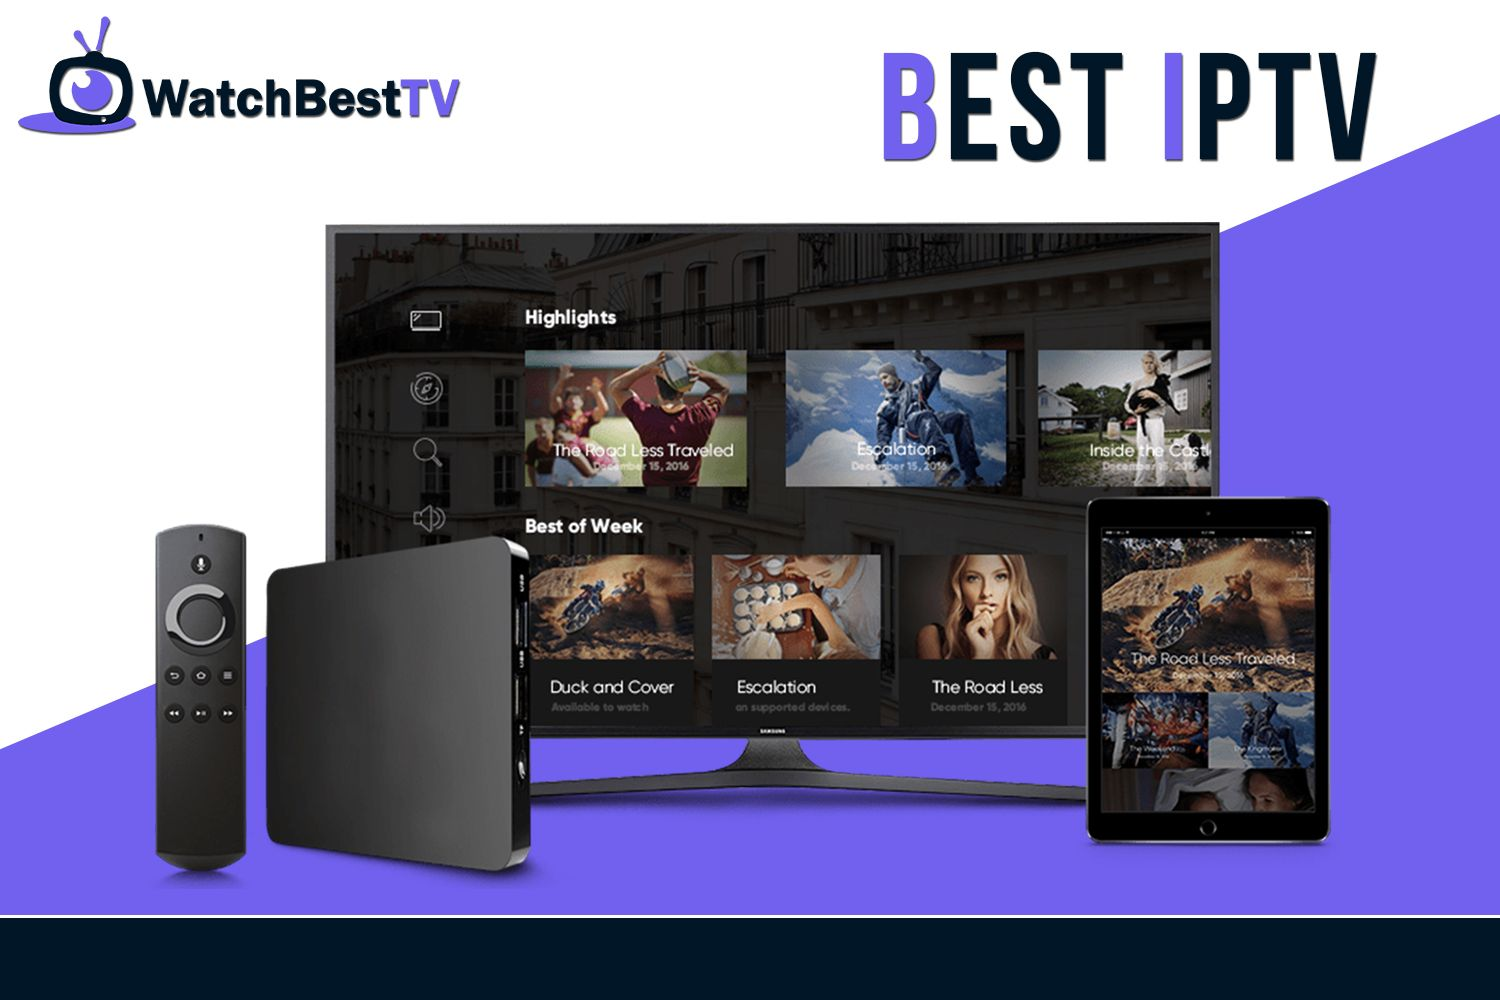 Are you interested to get Gold package for your live TV? Checkout